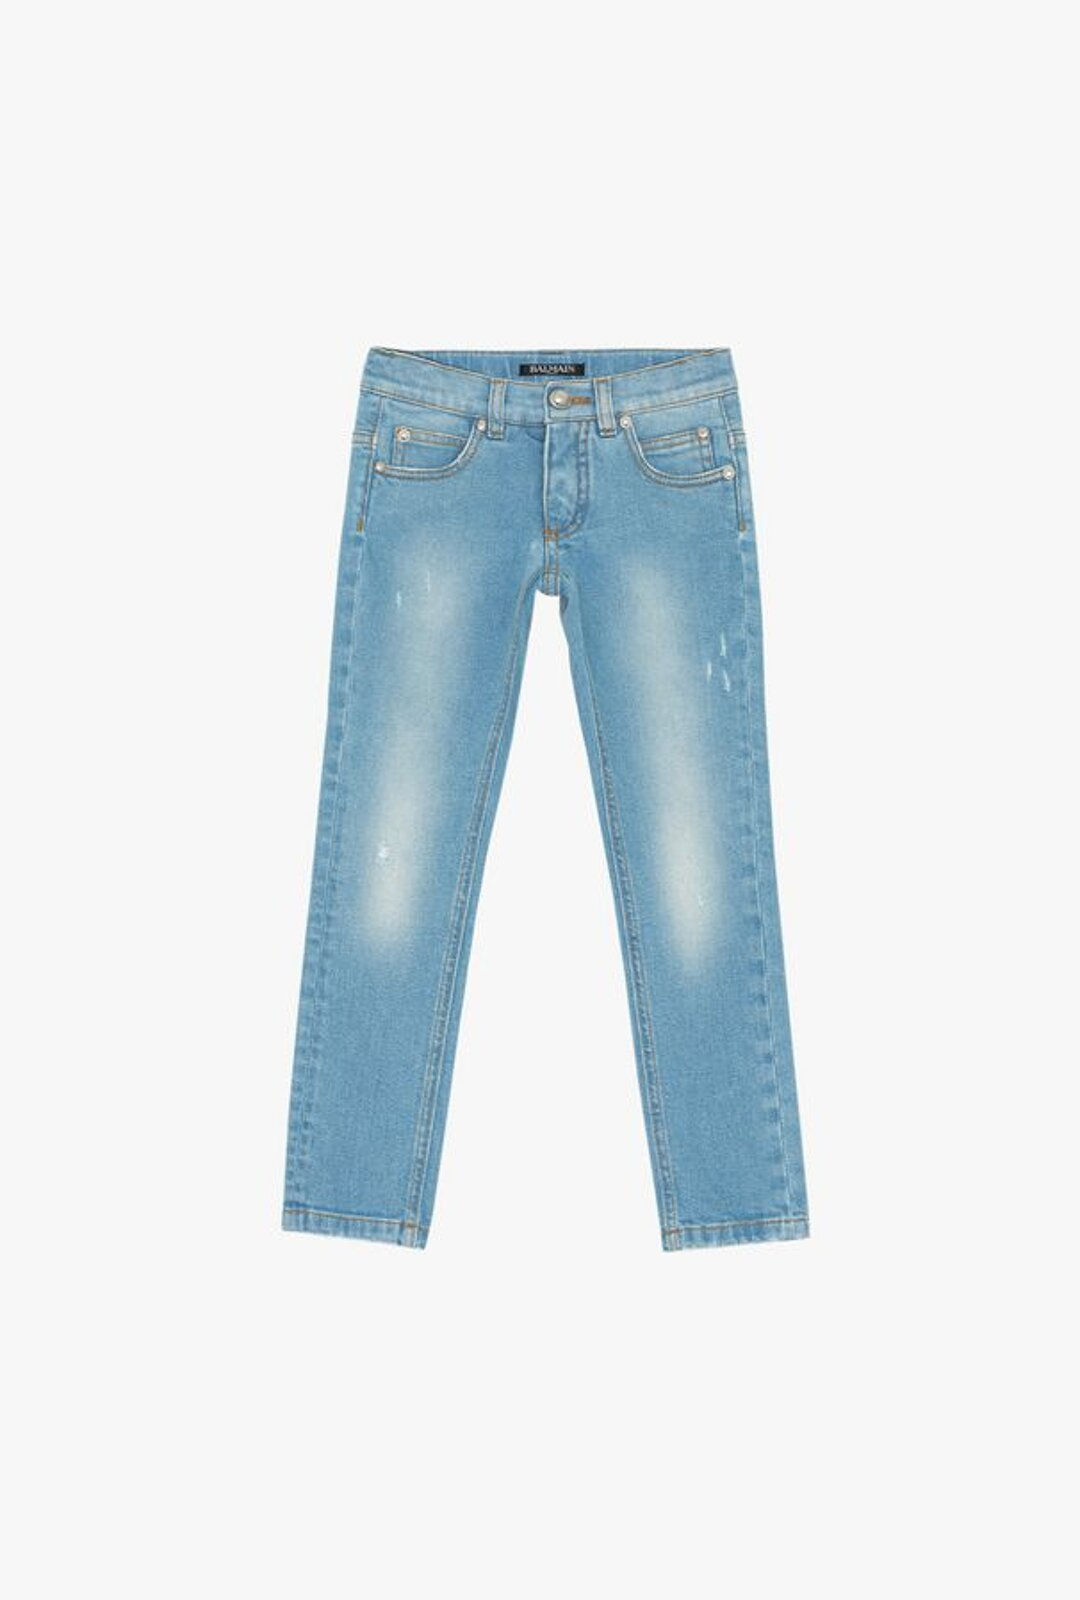 Light Blue Cotton Jeans With Faded Effect - Balmain Junior